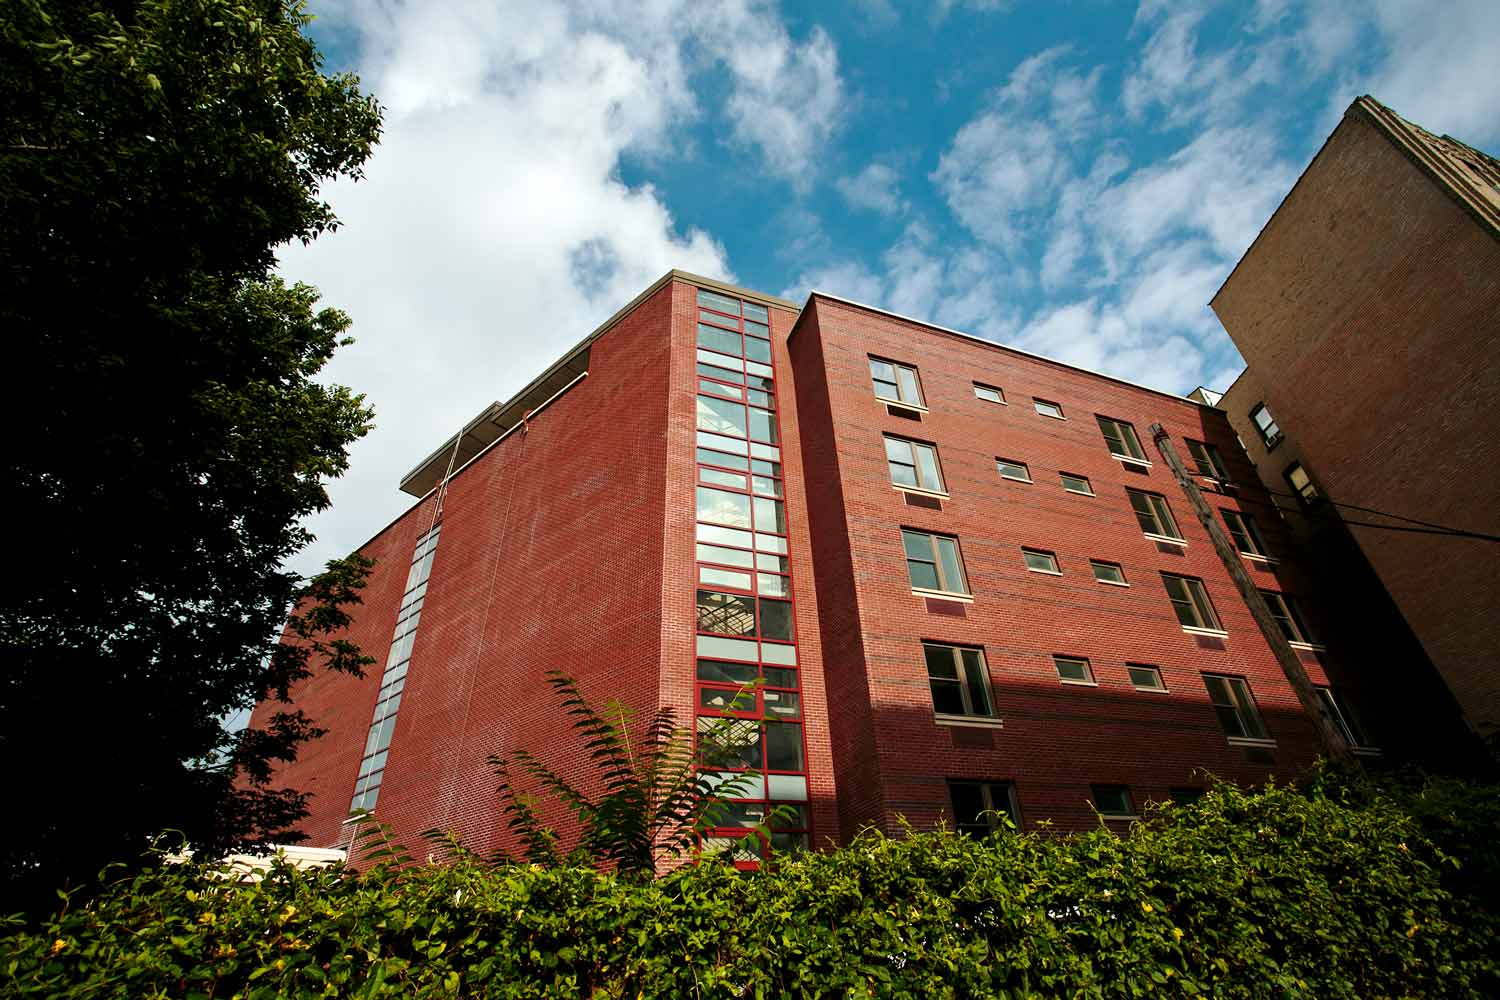 Mosholu Gardens project is 64 units of LEED Silver supportive housing by OCV Architects.